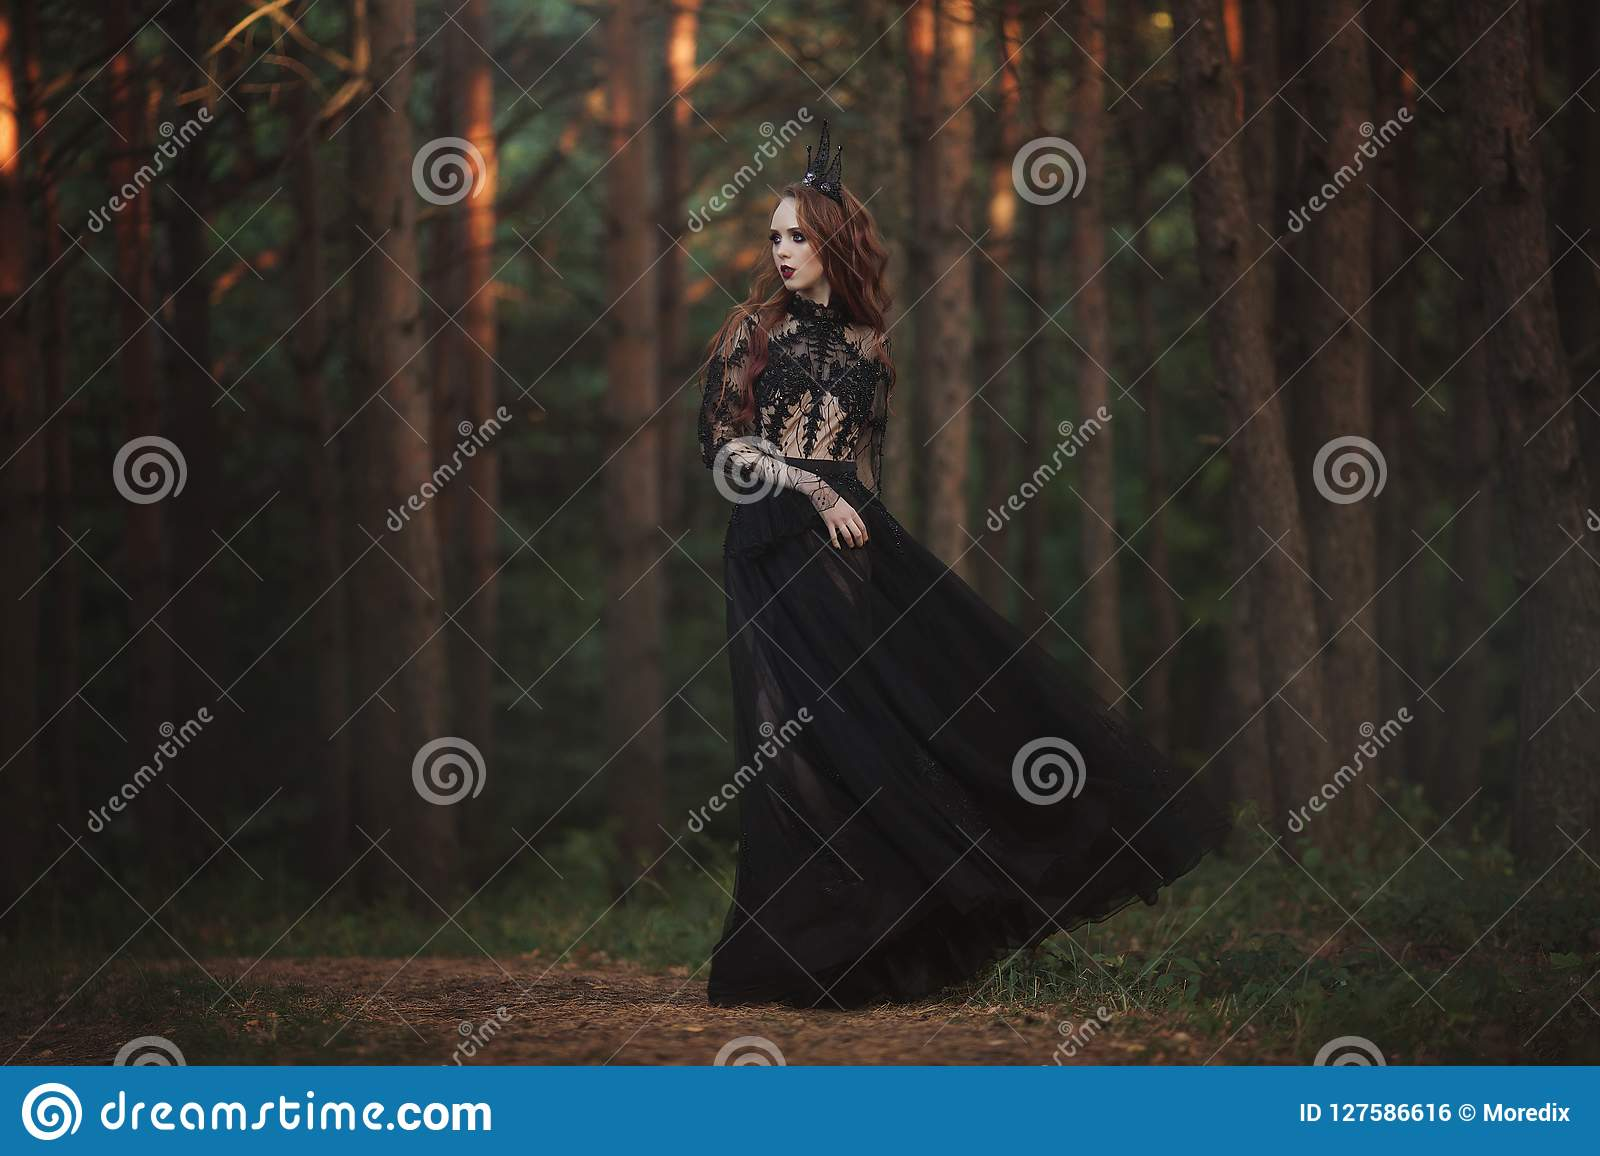 A beautiful gothic princess with pale skin and very long red hair in a black crown and a black long dress in a misty fairy forest.